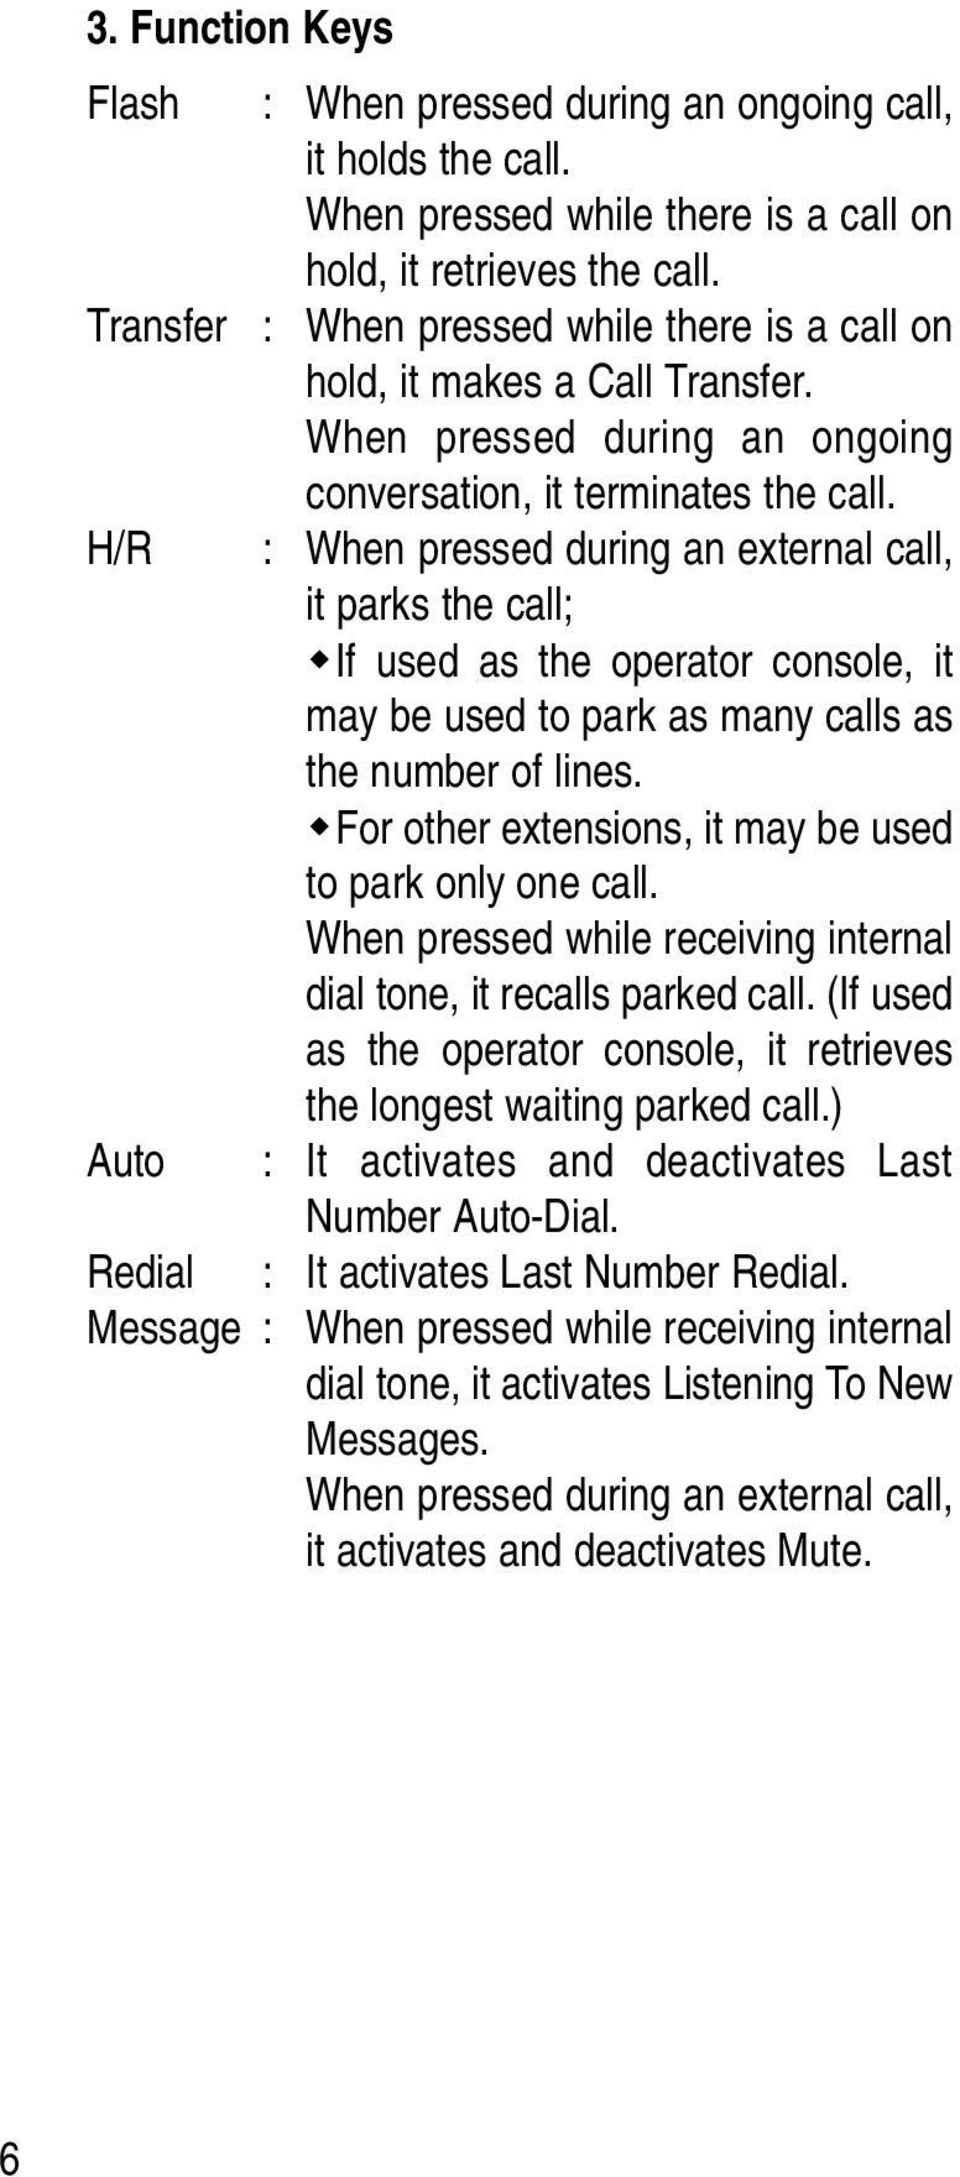 H/R : When pressed during an external call, it parks the call; If used as the operator console, it may be used to park as many calls as the number of lines.